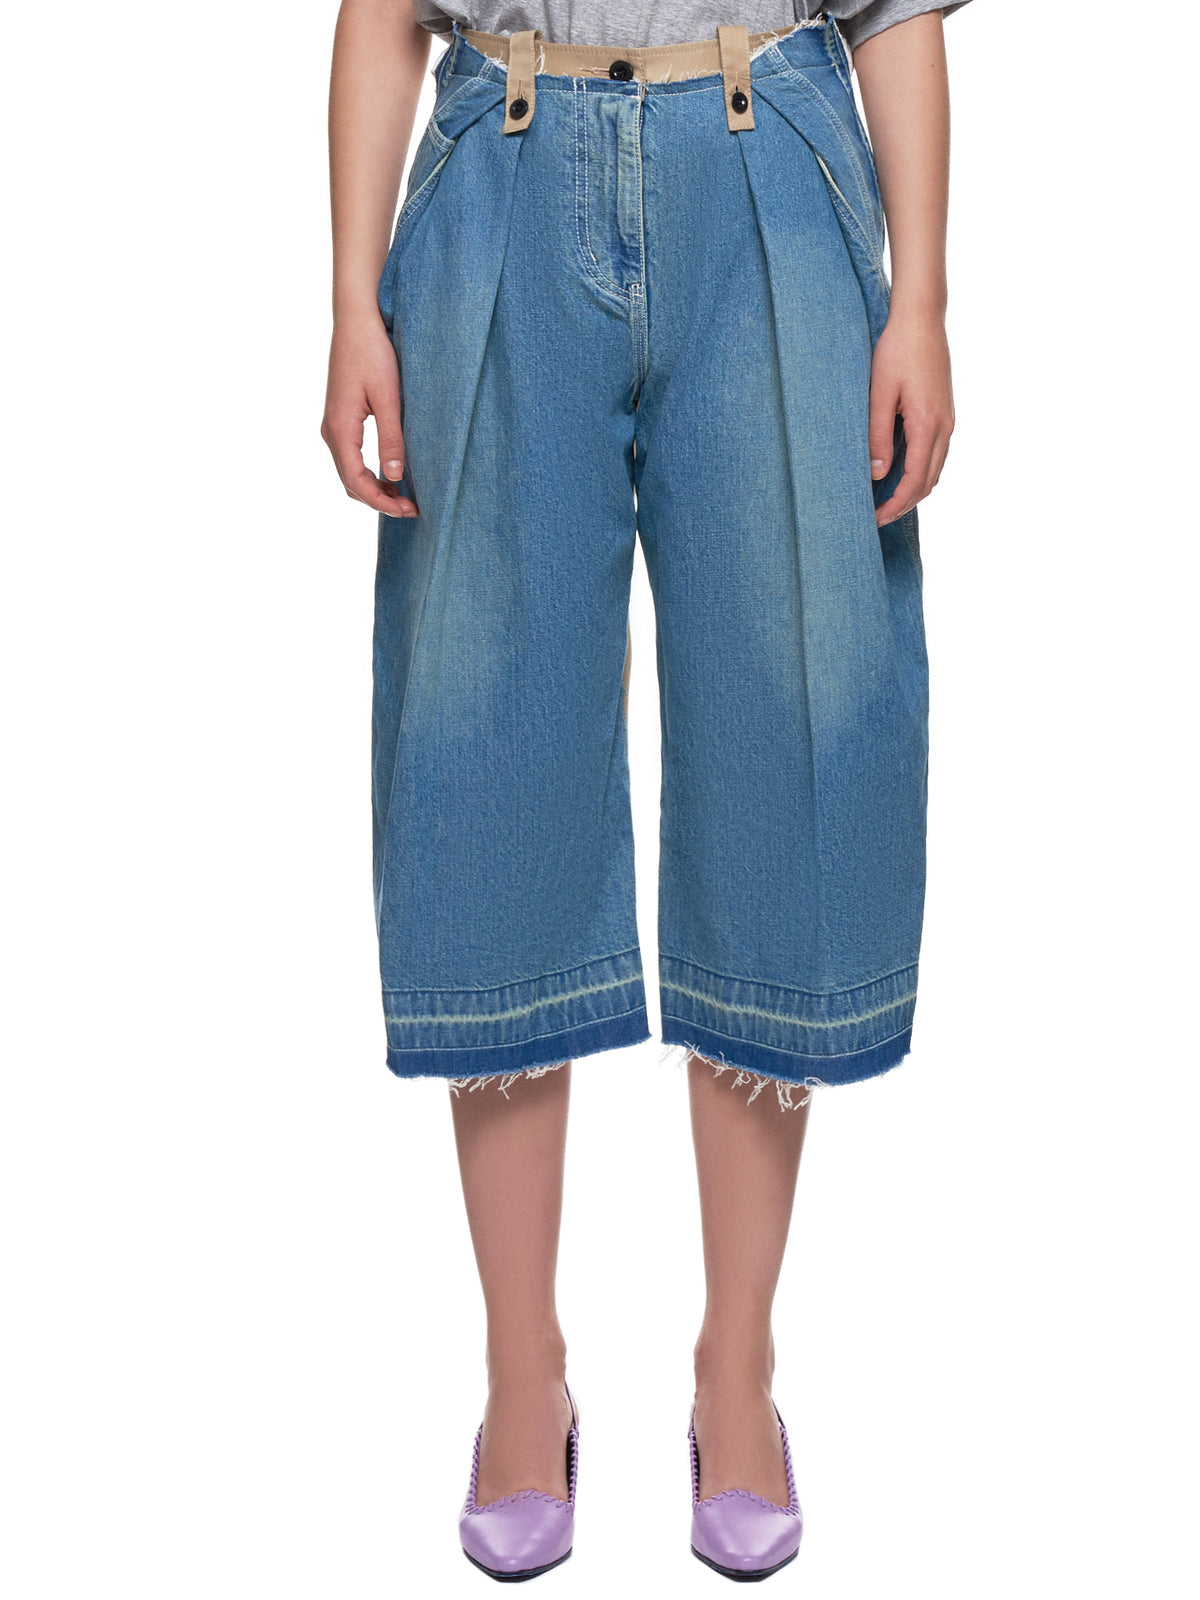 Split Pants (19-04479-LIGHT-BLUE-BEIGE)